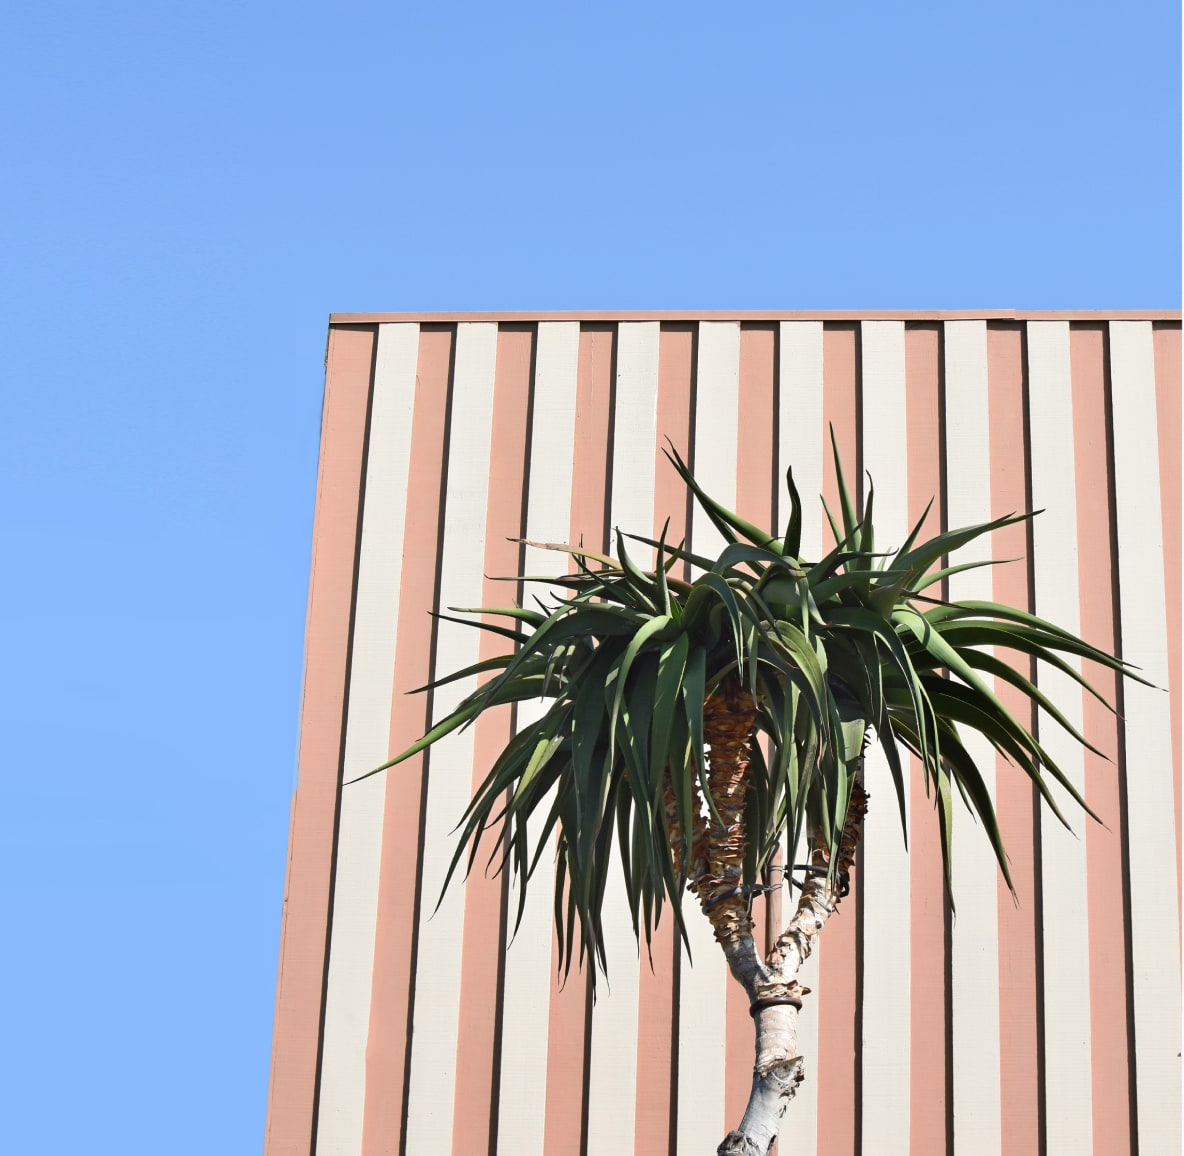 Palm tree in front of striped wall with blue sky in background